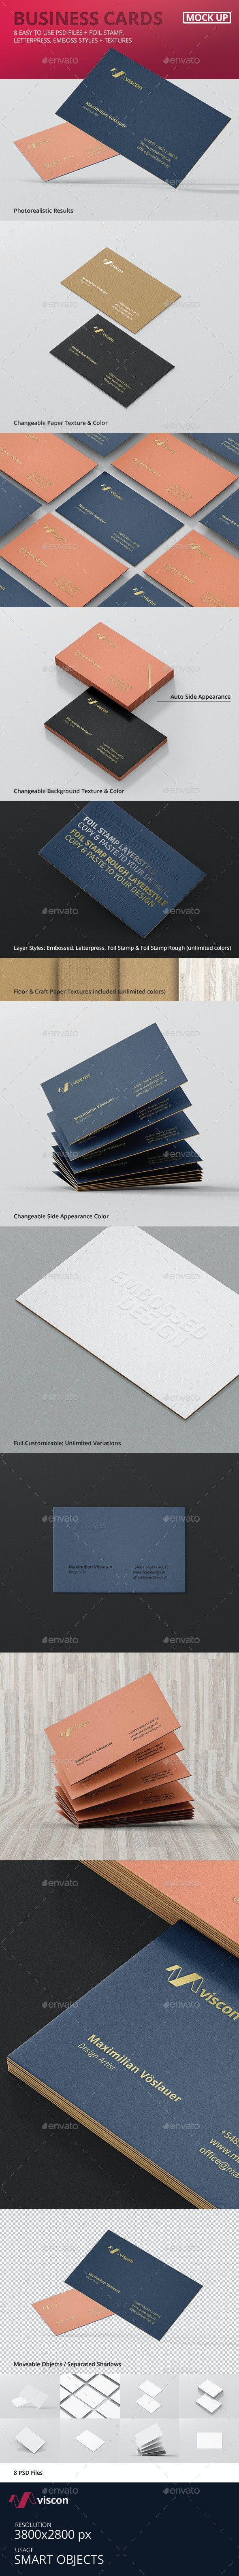 Business Cards Mock-Ups - Business Cards Print